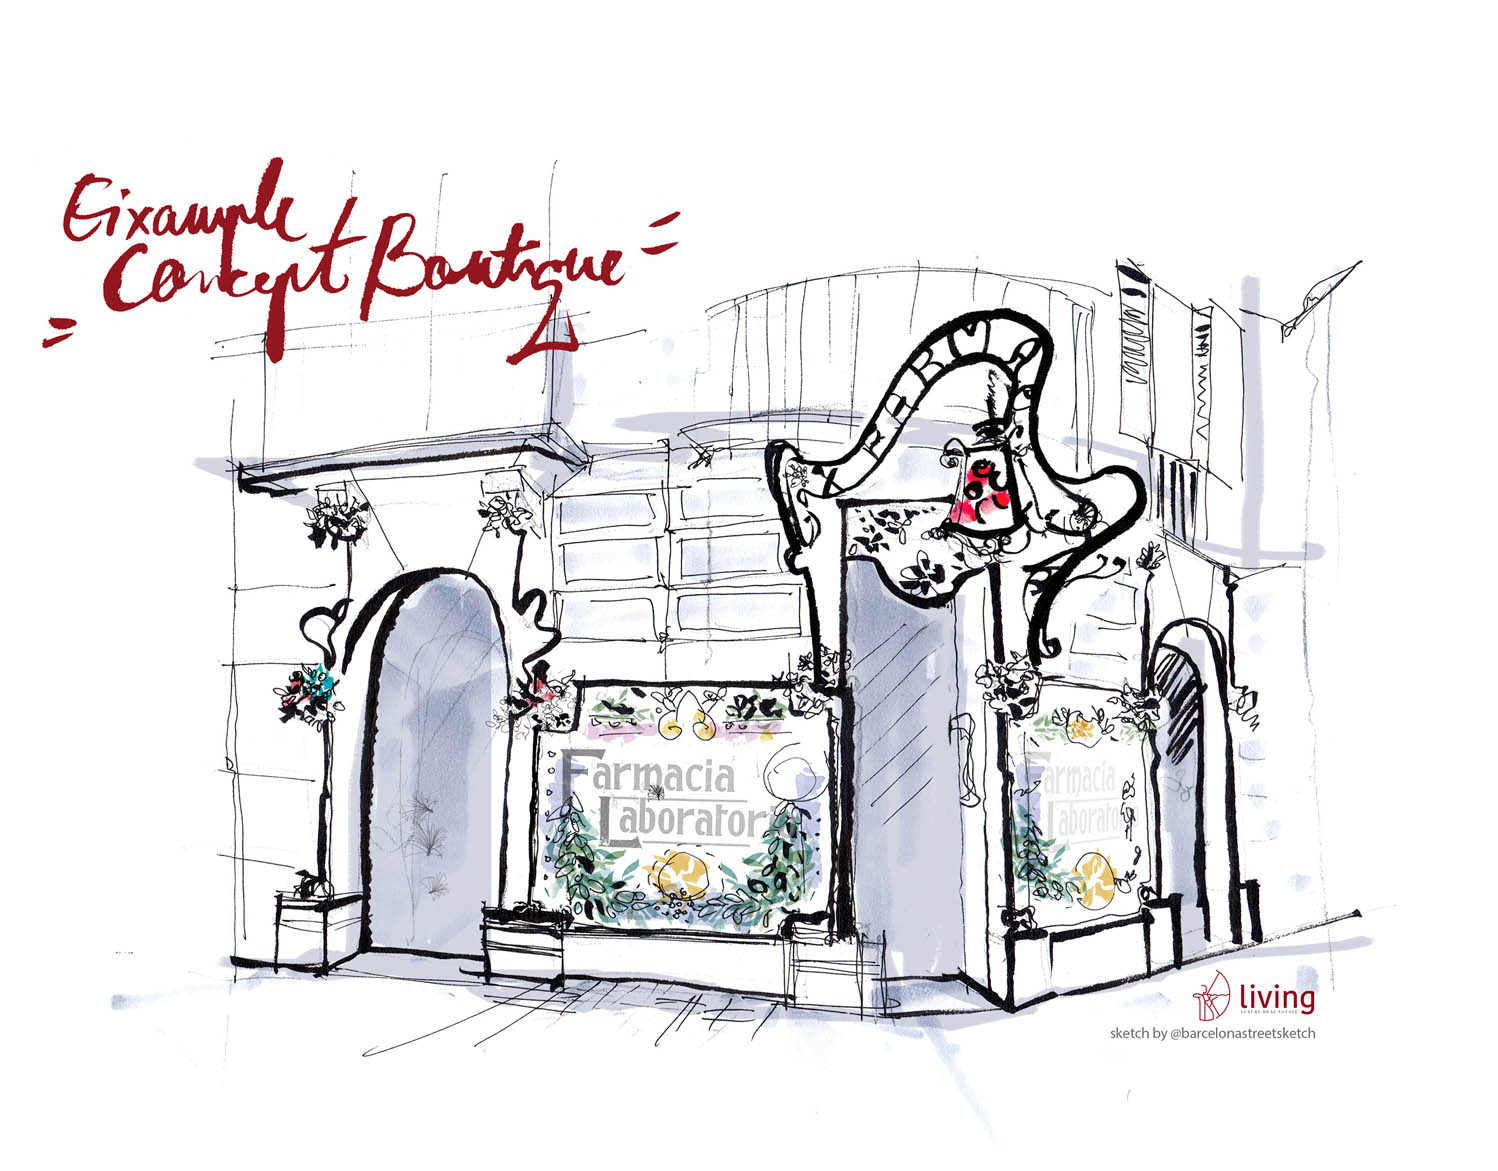 Illustration for Living Eixample Concept Boutique BCN